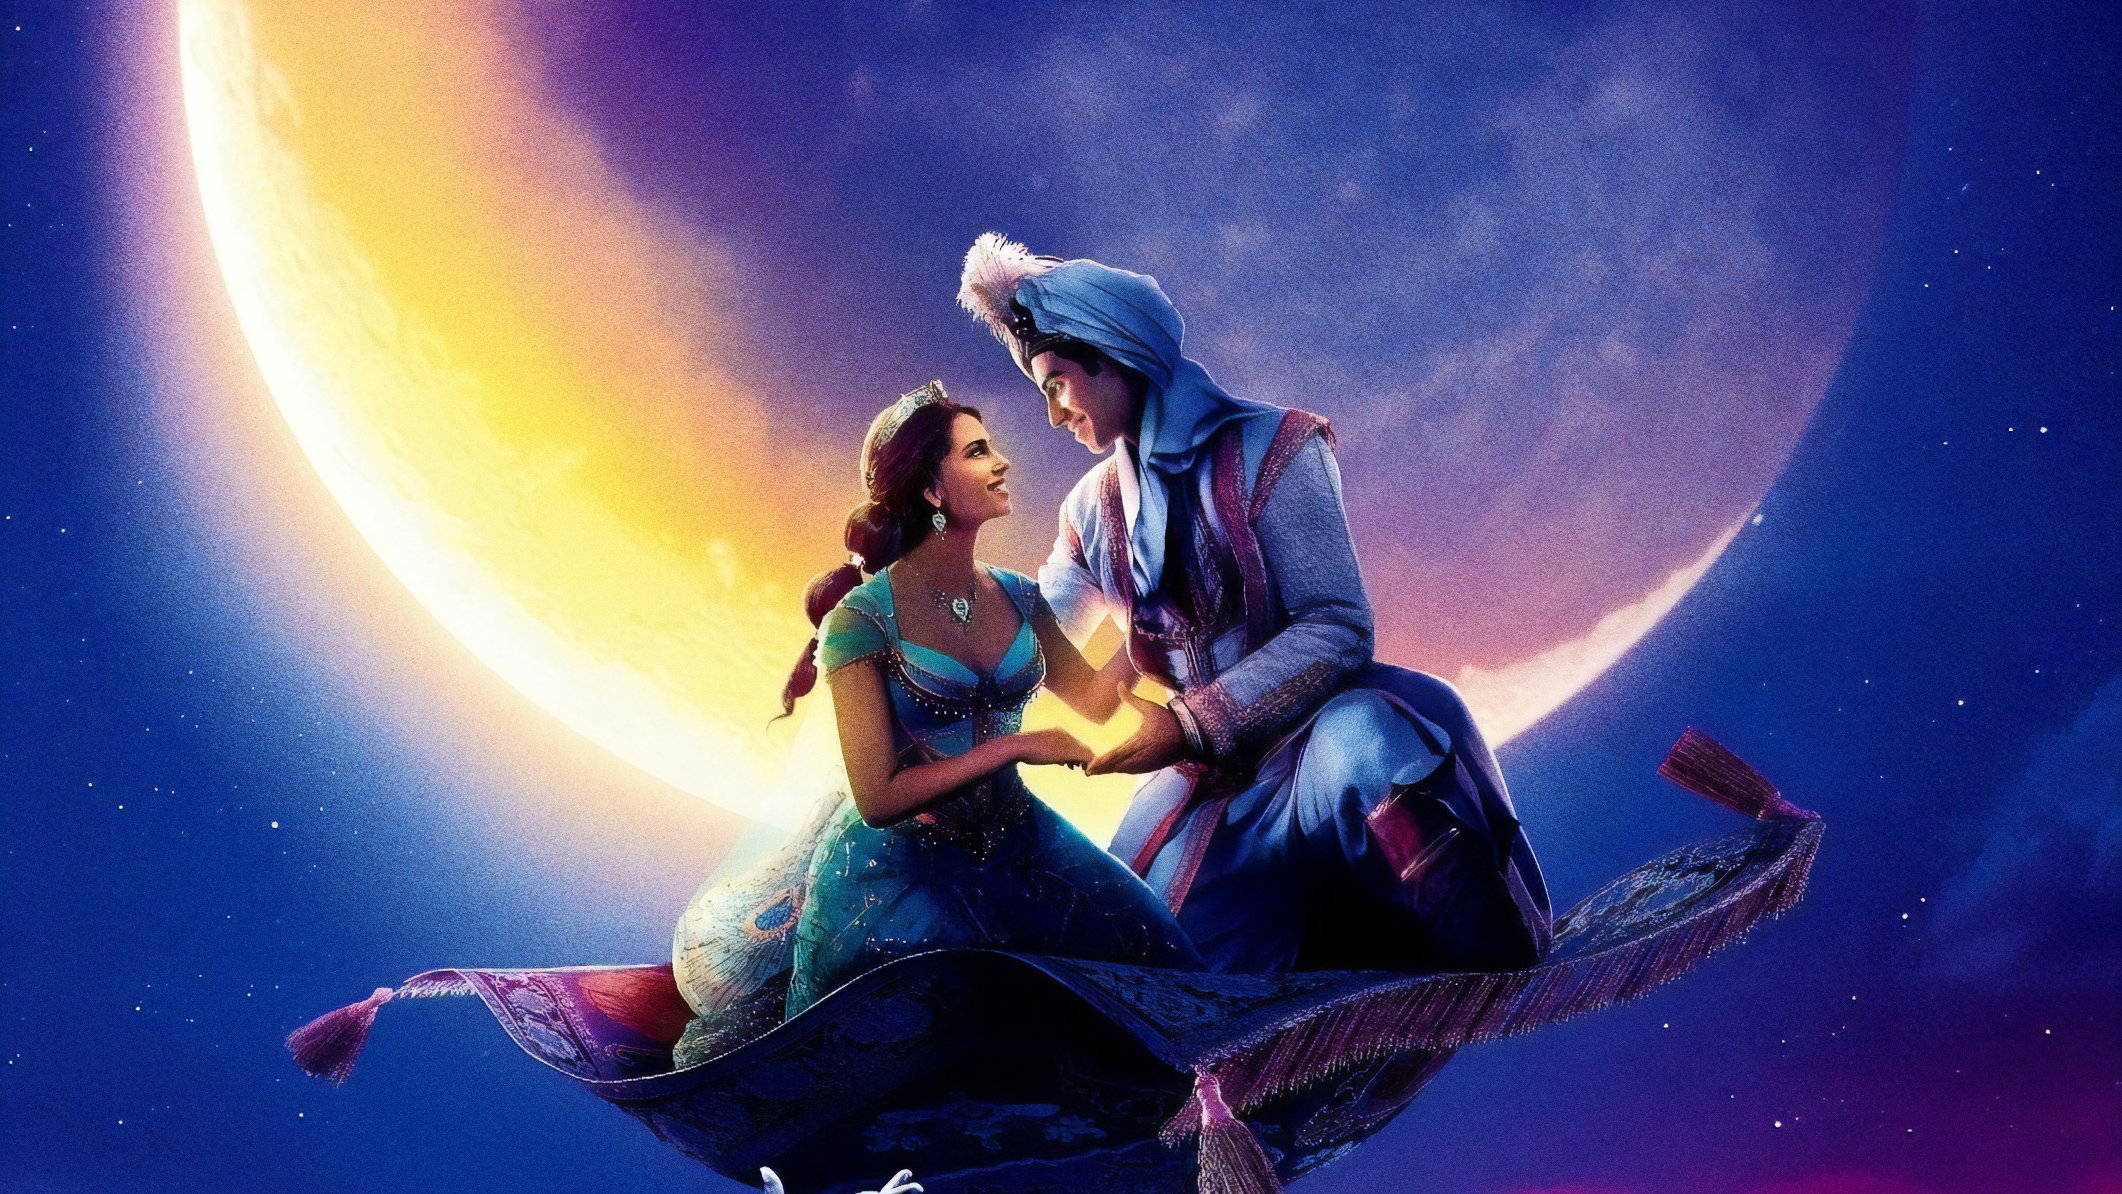 Aladdin 2019 Movie Poster Wallpapers Hd Wallpapers